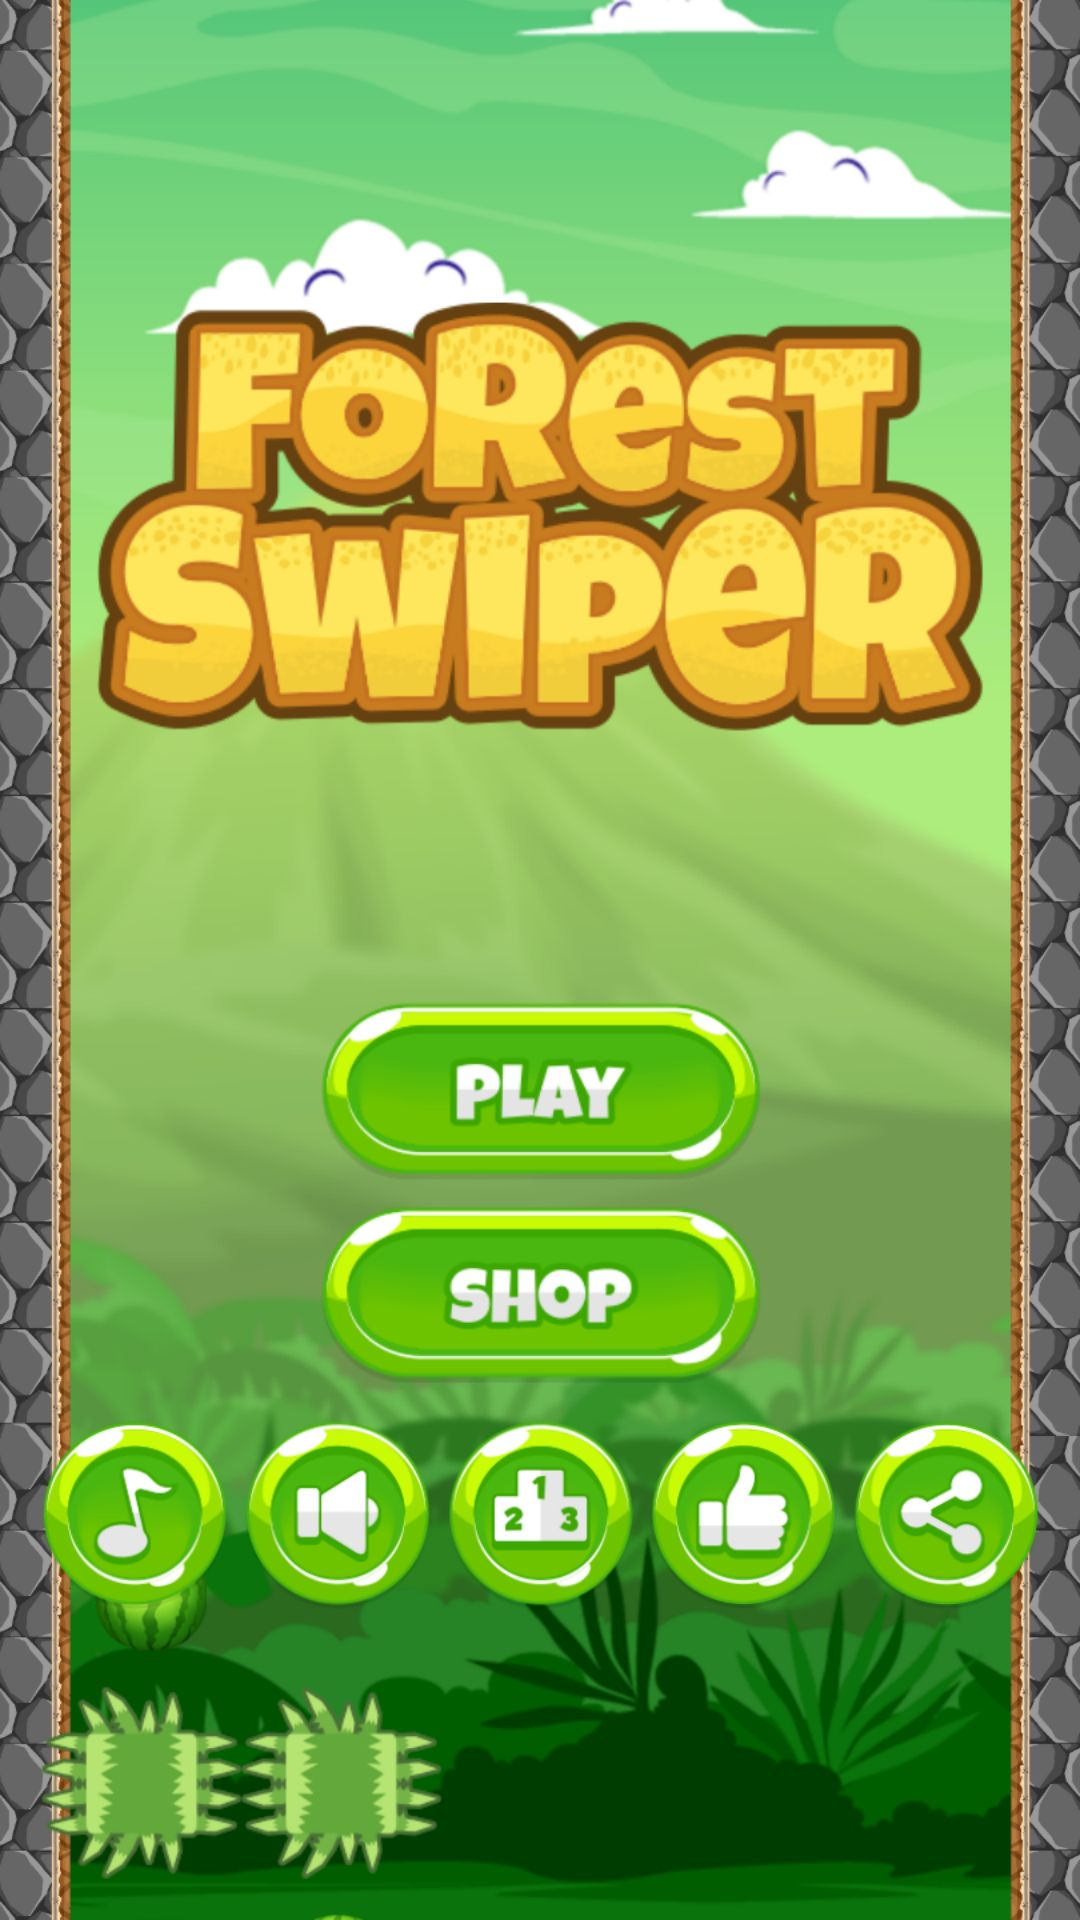 Forest Swiper - Android Source Code Screenshot 1